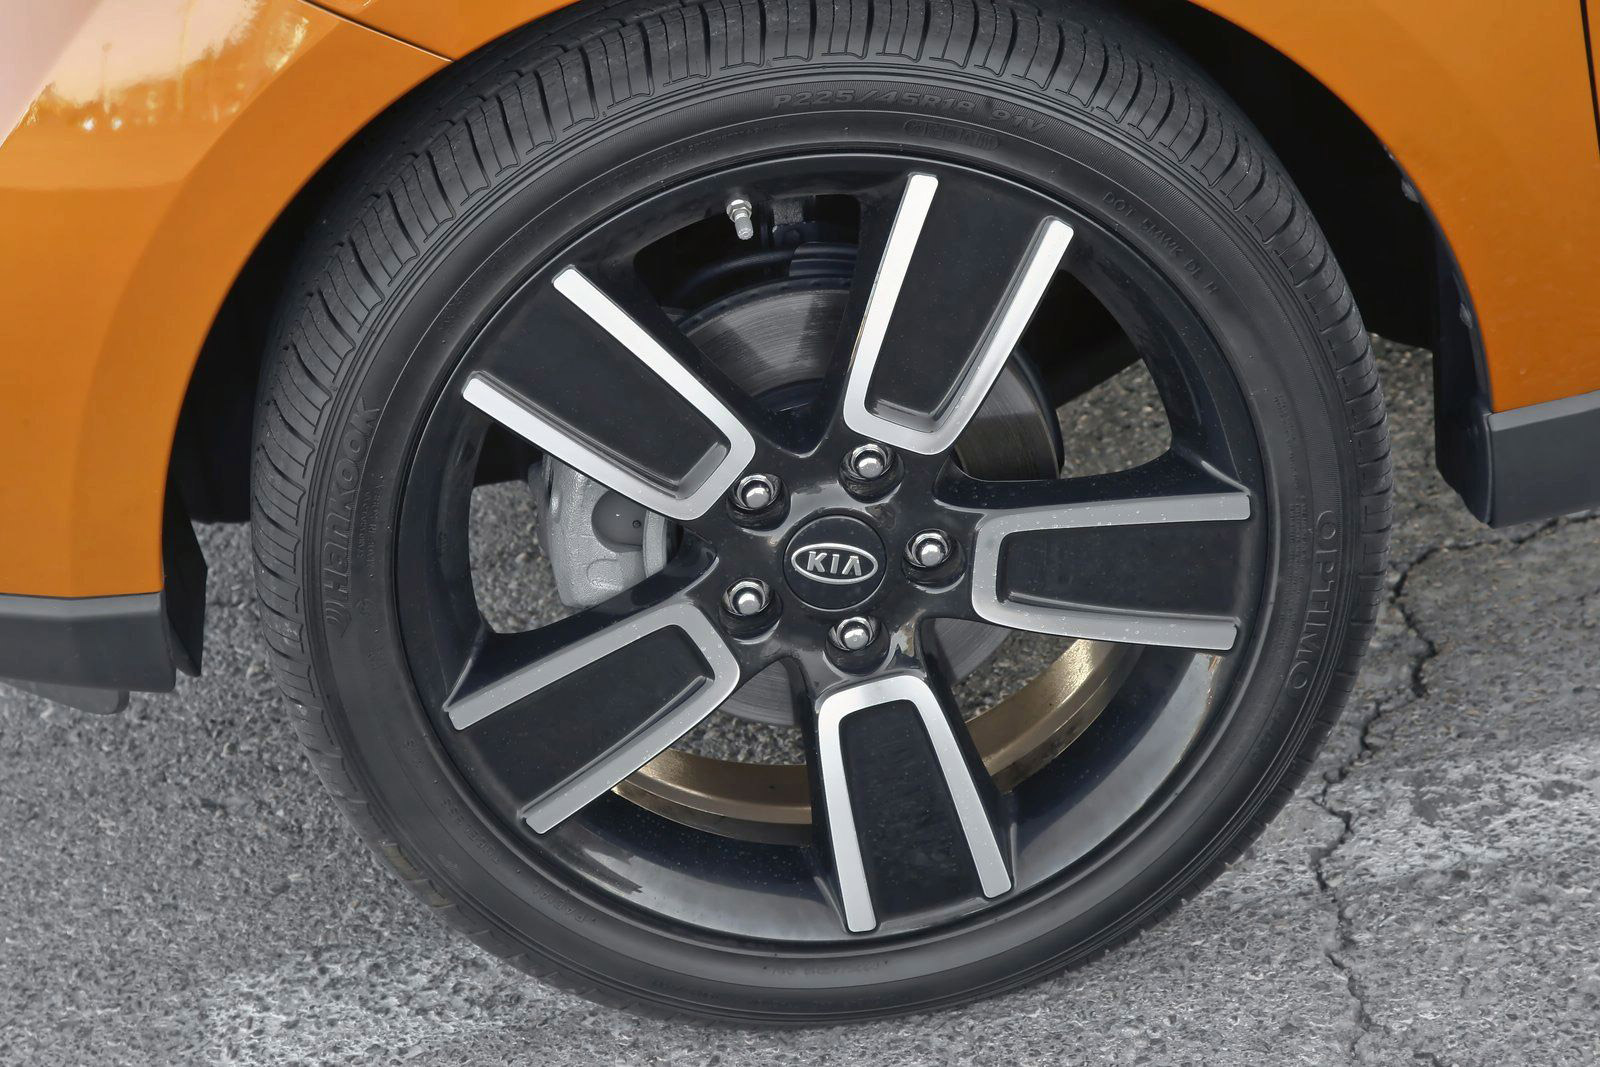 Kia Soul wheels #4